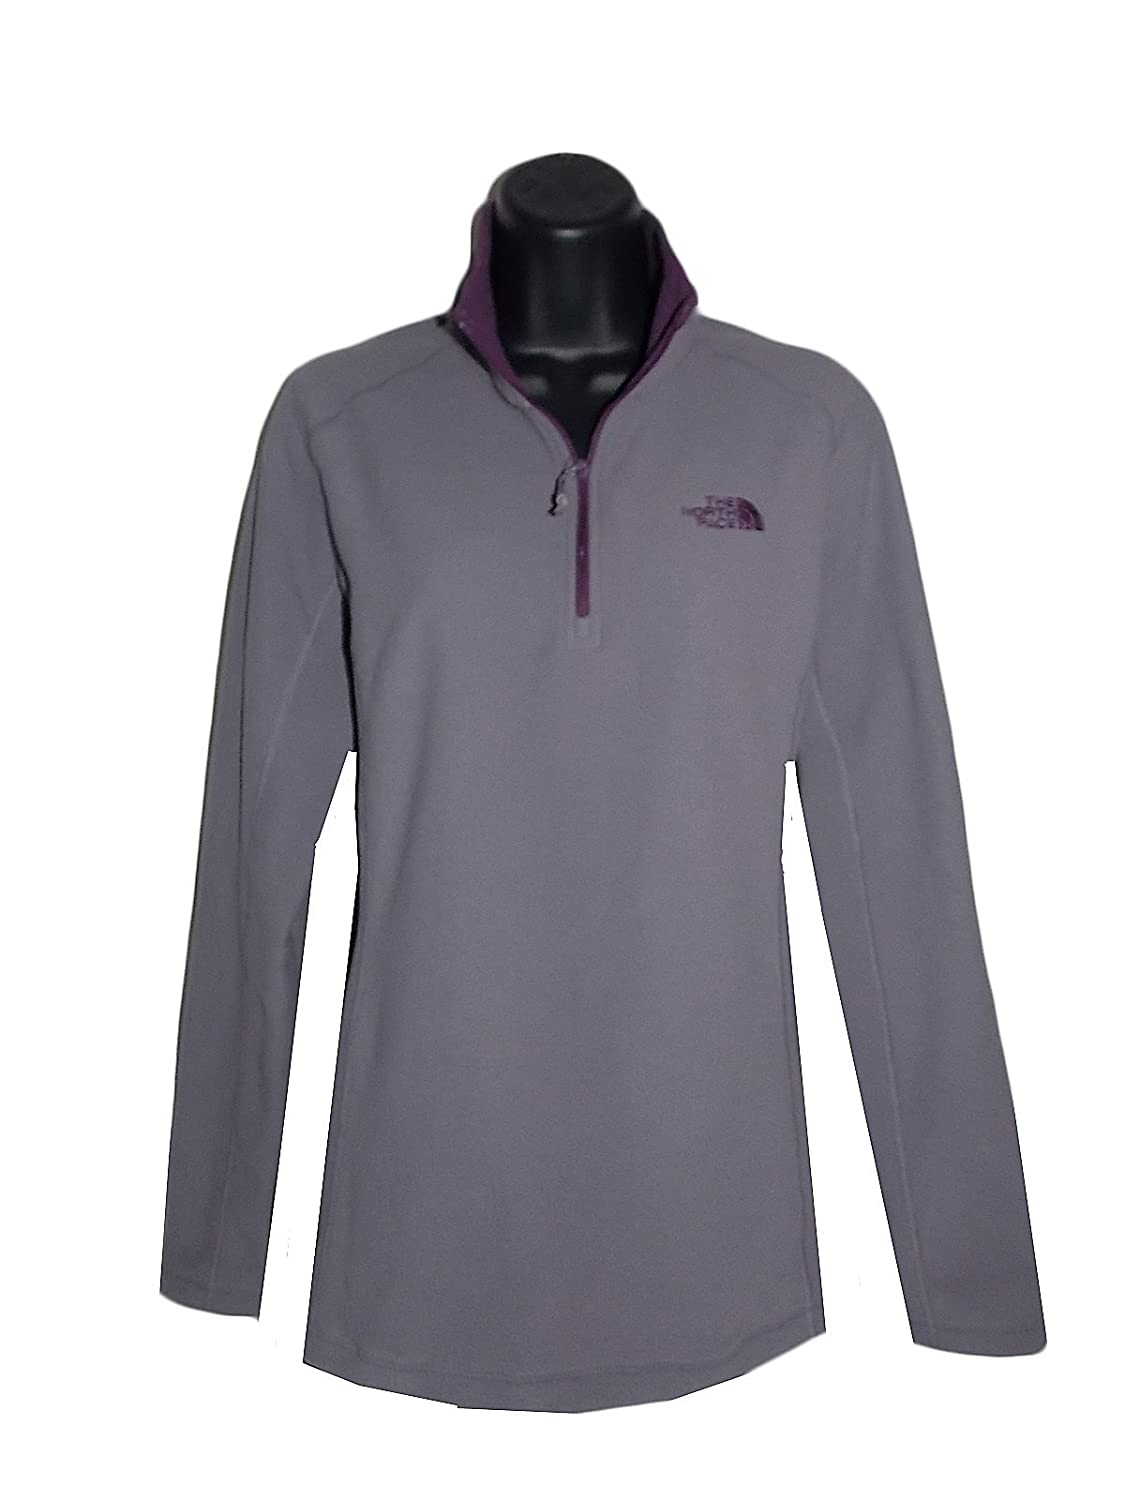 The North Face Womens 100 WT Glacier 1/4 Zip Jacket Coastal Grey Size Large